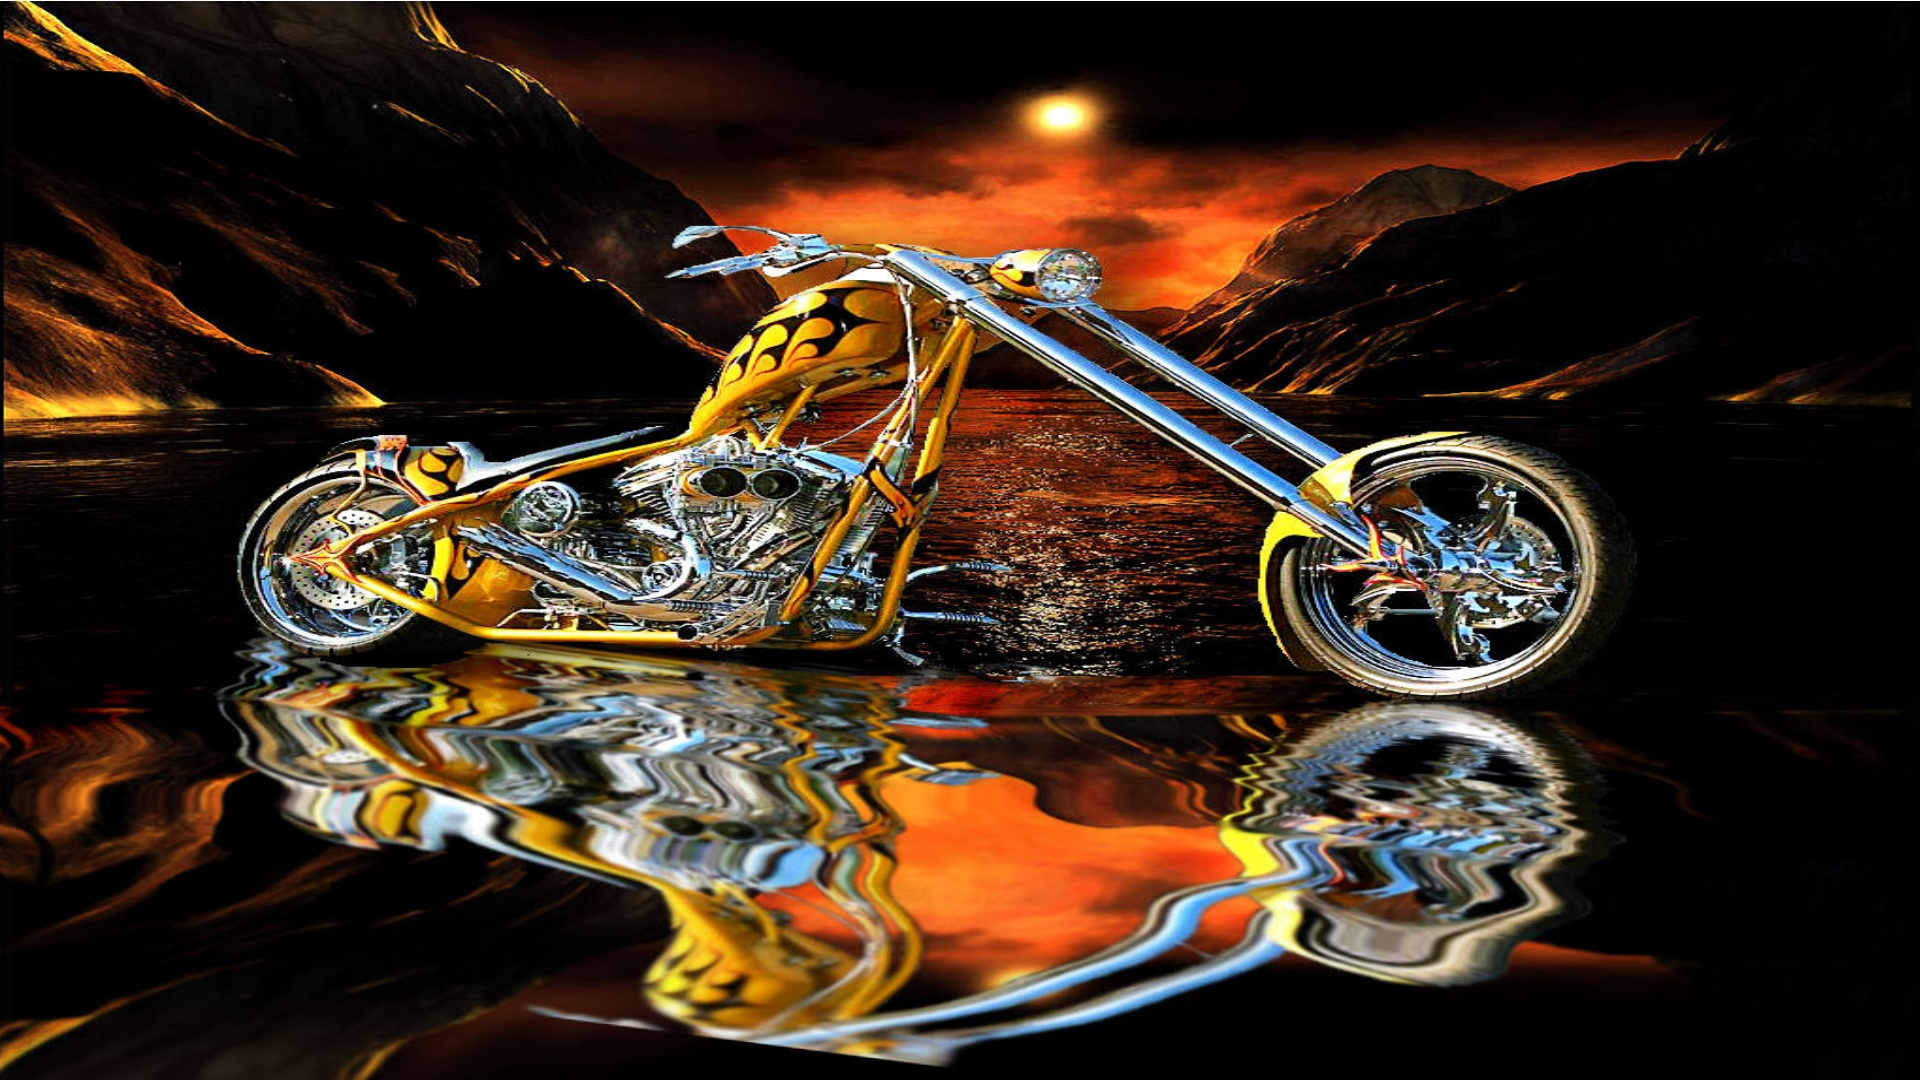 Occ Choppers Wallpapers HD Wallpapers For Windows 8 1920x1080